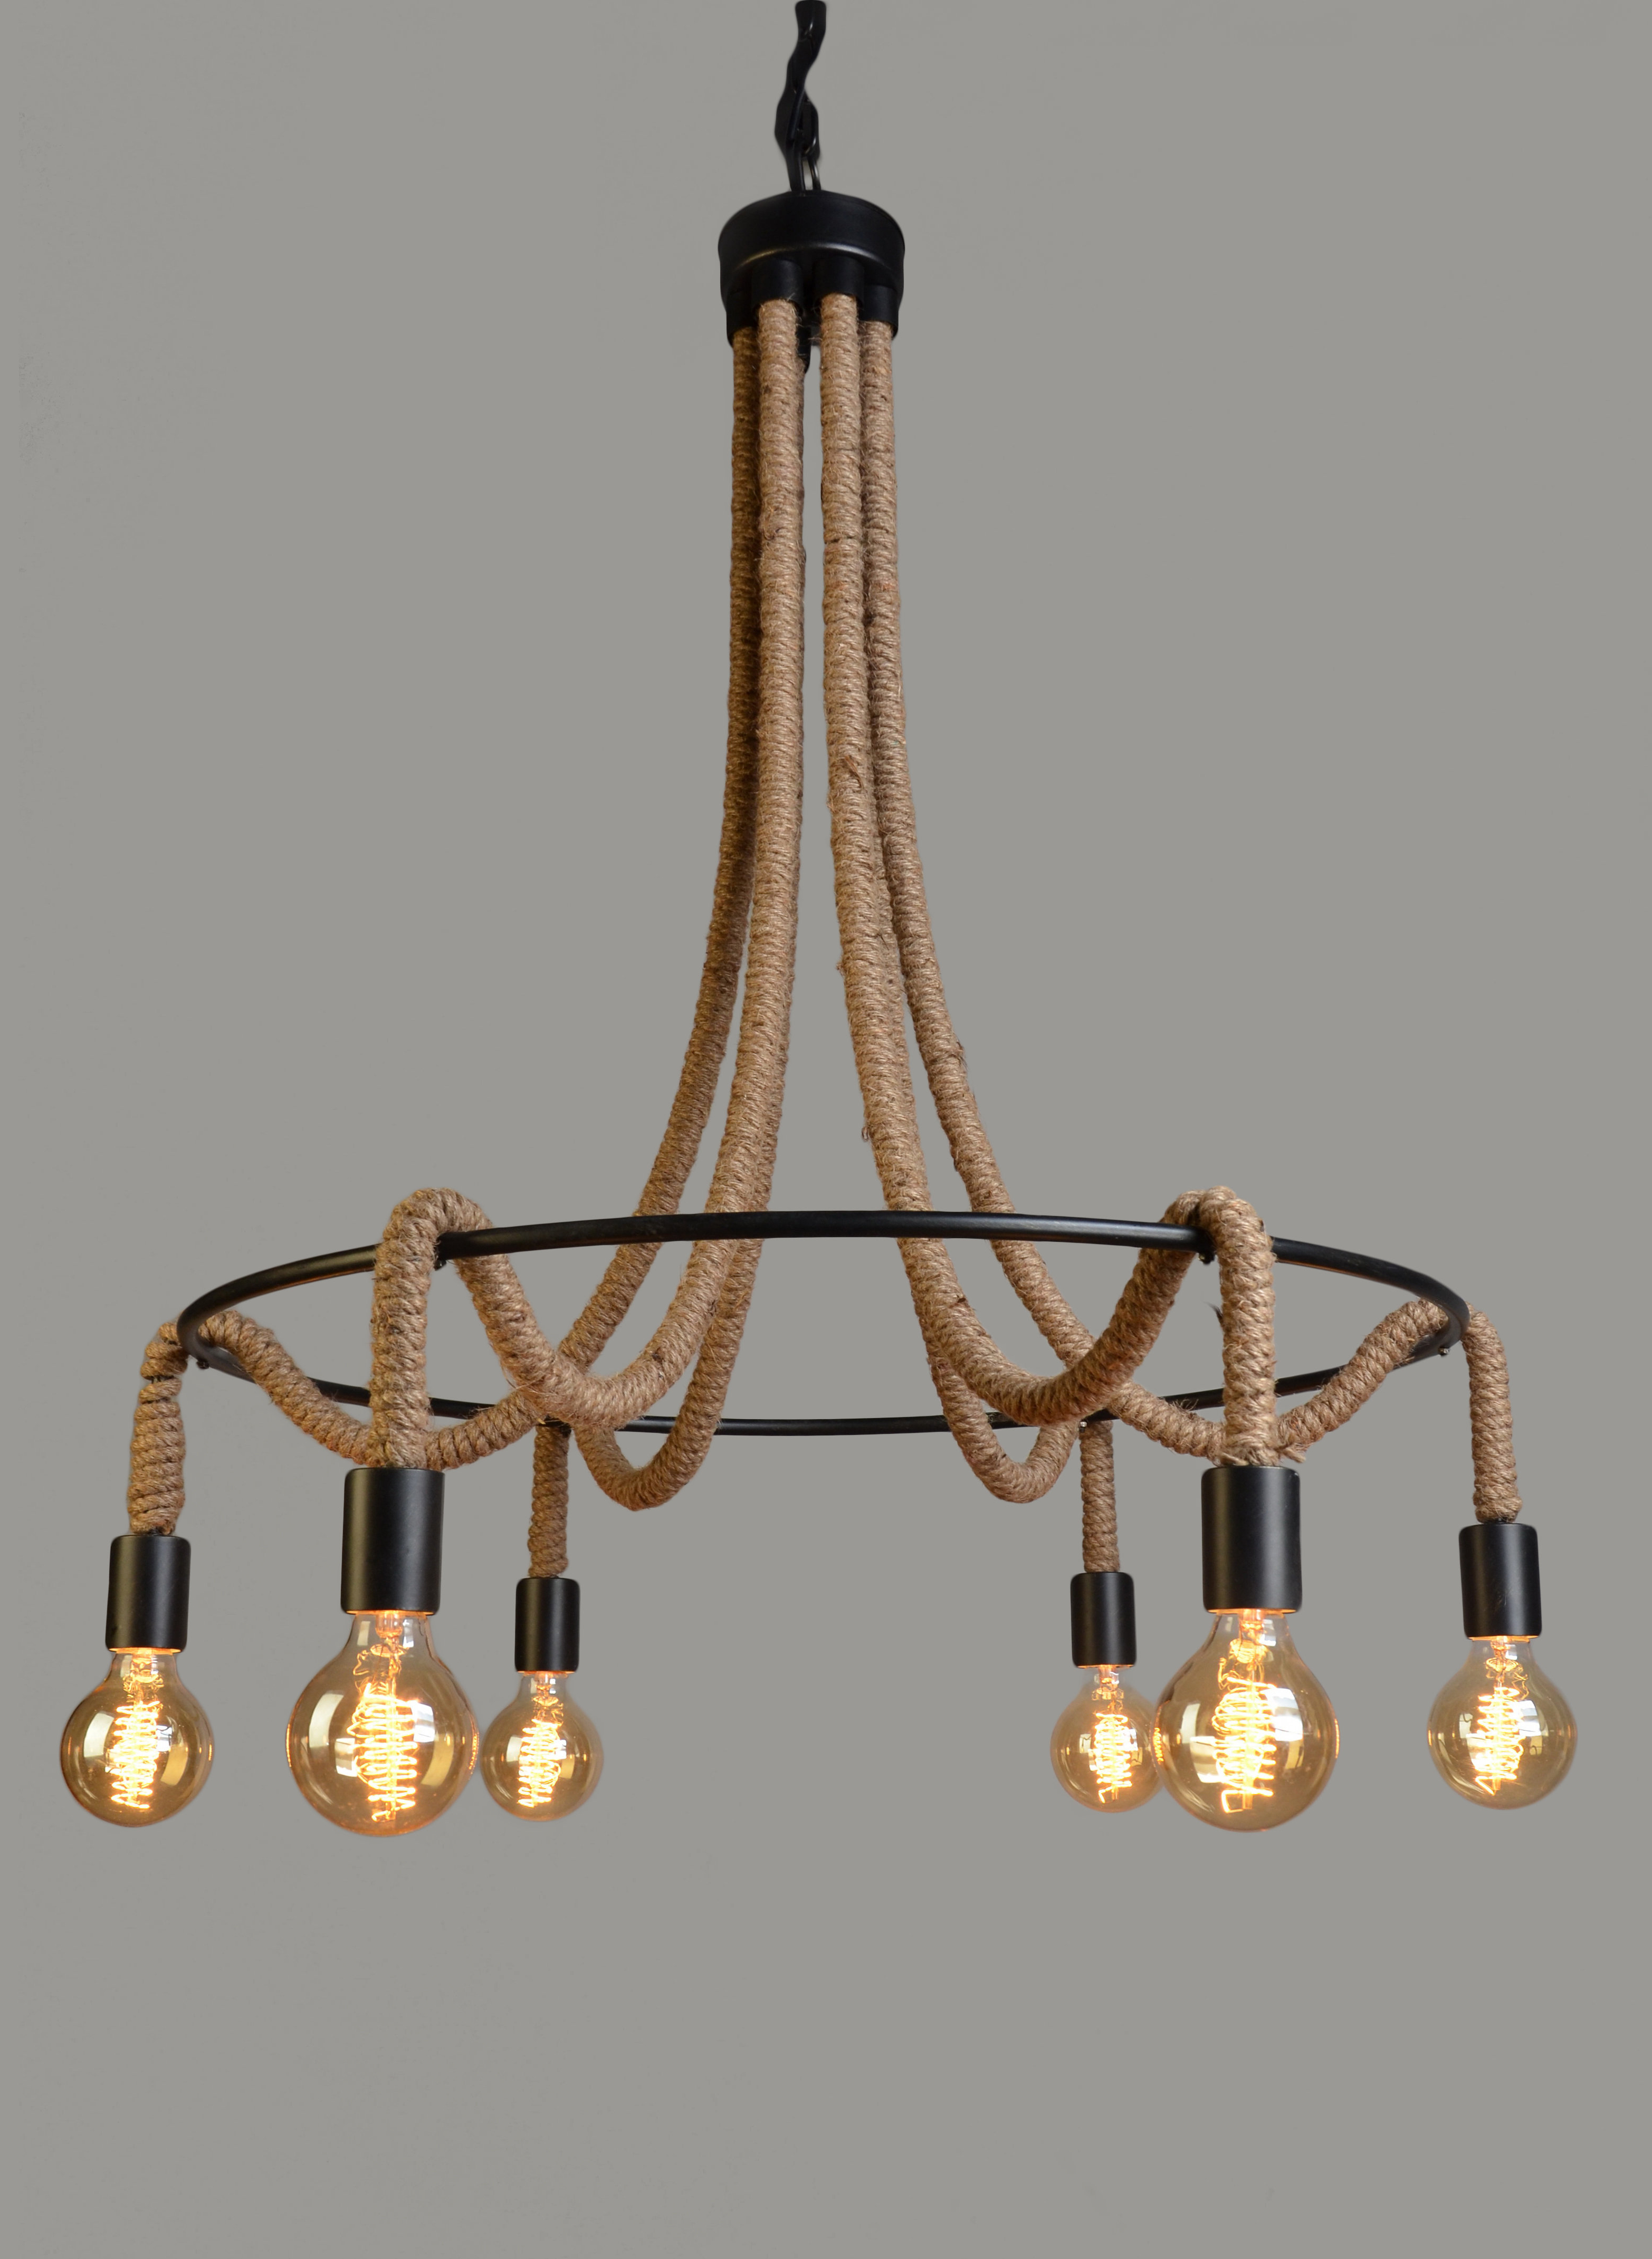 Goodrum 6 Light Wagon Wheel Chandelier With Regard To 2019 Millbrook 5 Light Shaded Chandeliers (View 5 of 20)